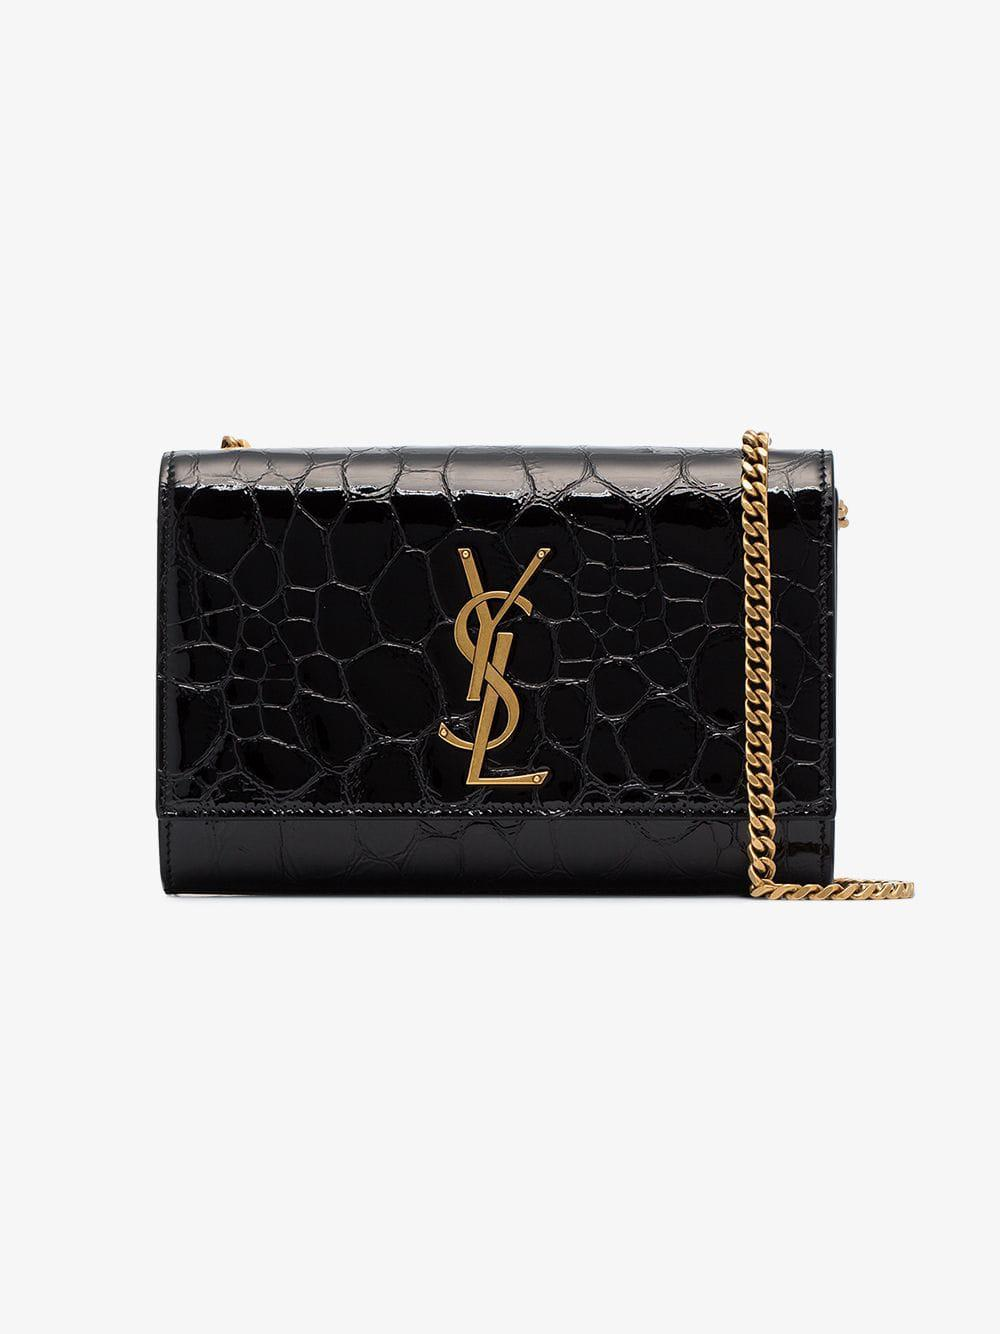 c7fcb2a6bd Saint Laurent. Women s Black Kate Small Crocodile Embossed Leather Shoulder  Bag